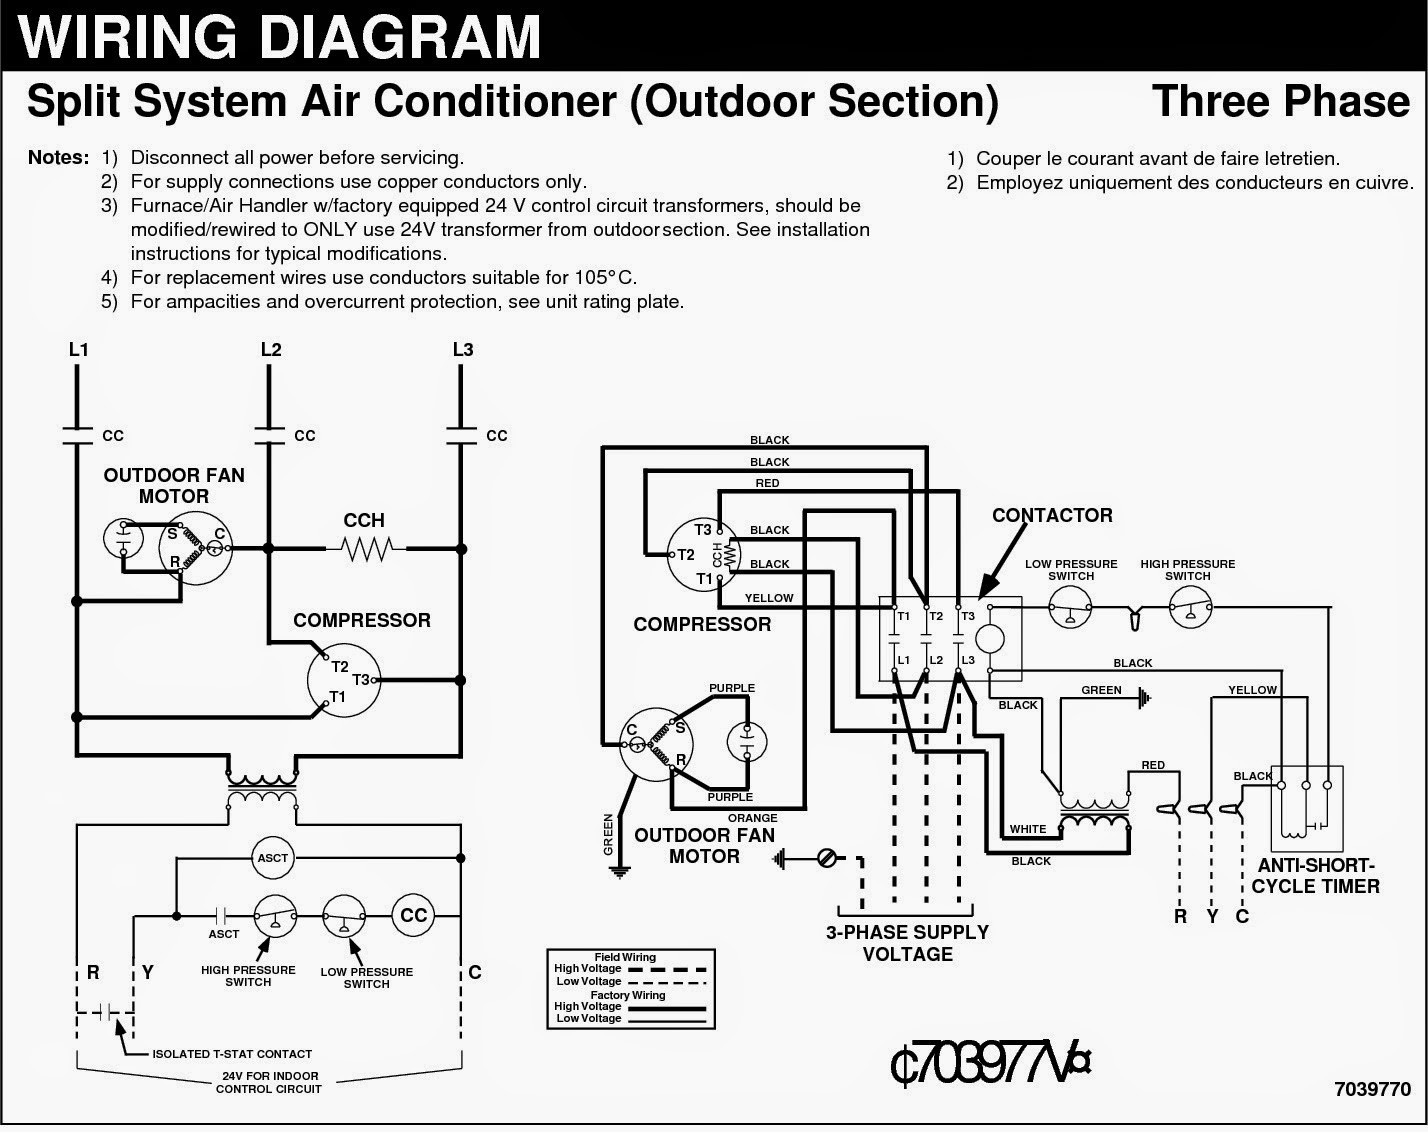 3 Phase Compressor Wiring Diagram Converter Air Conditioning Simple Diagramac Codes 1969 Chevelle